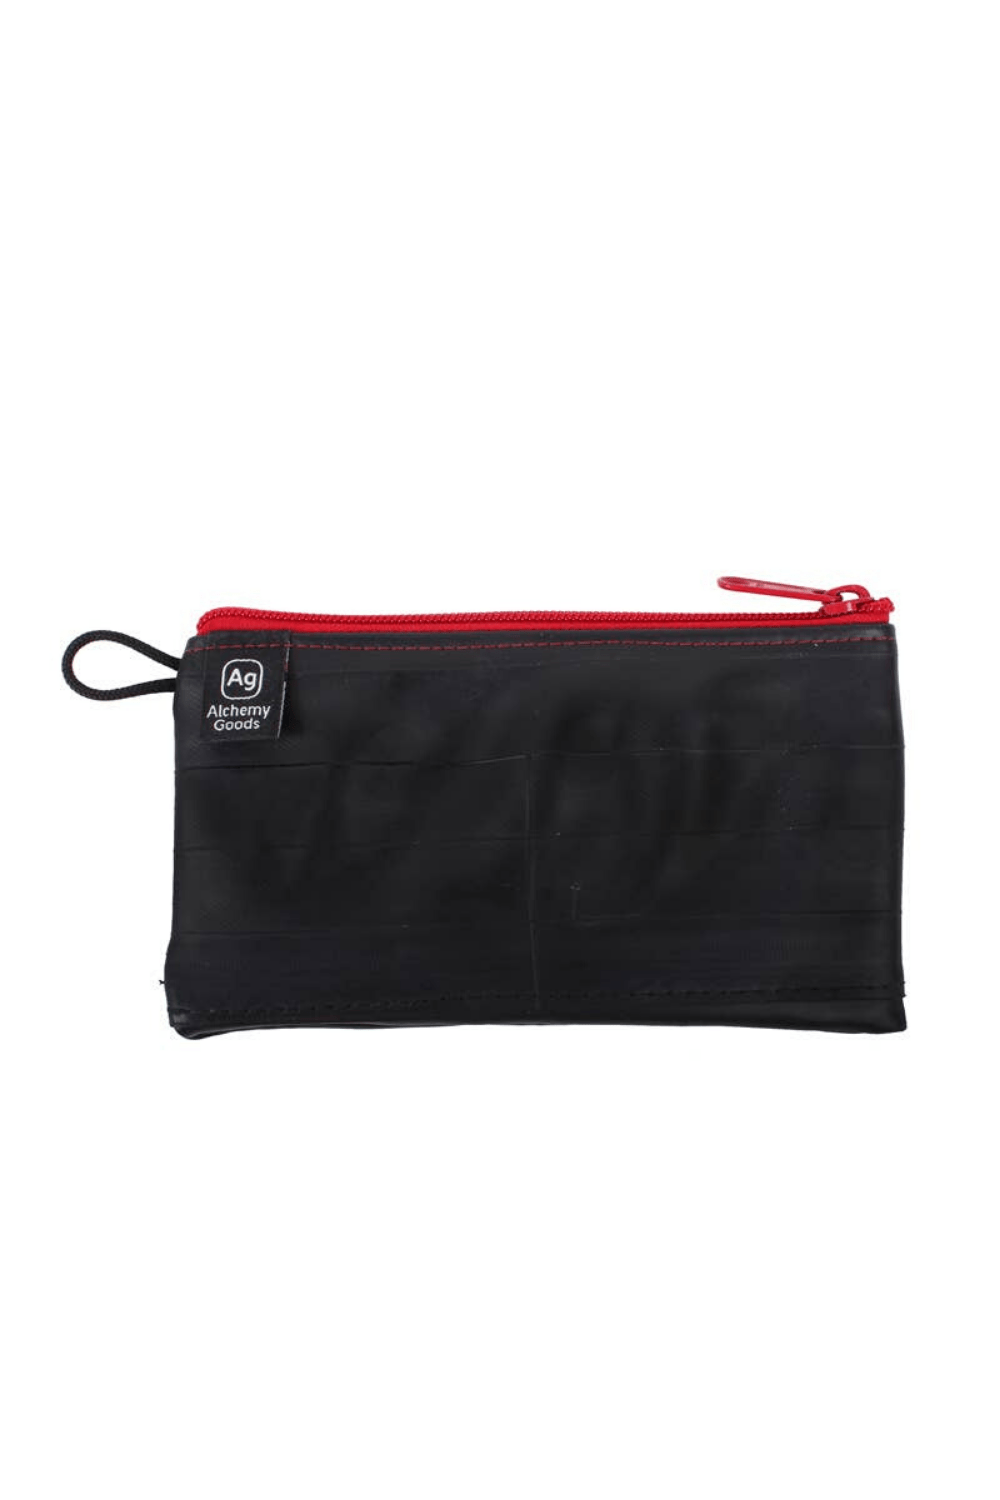 Alchemy Goods Men's Travel Kits Red Zipper Pouch • Medium